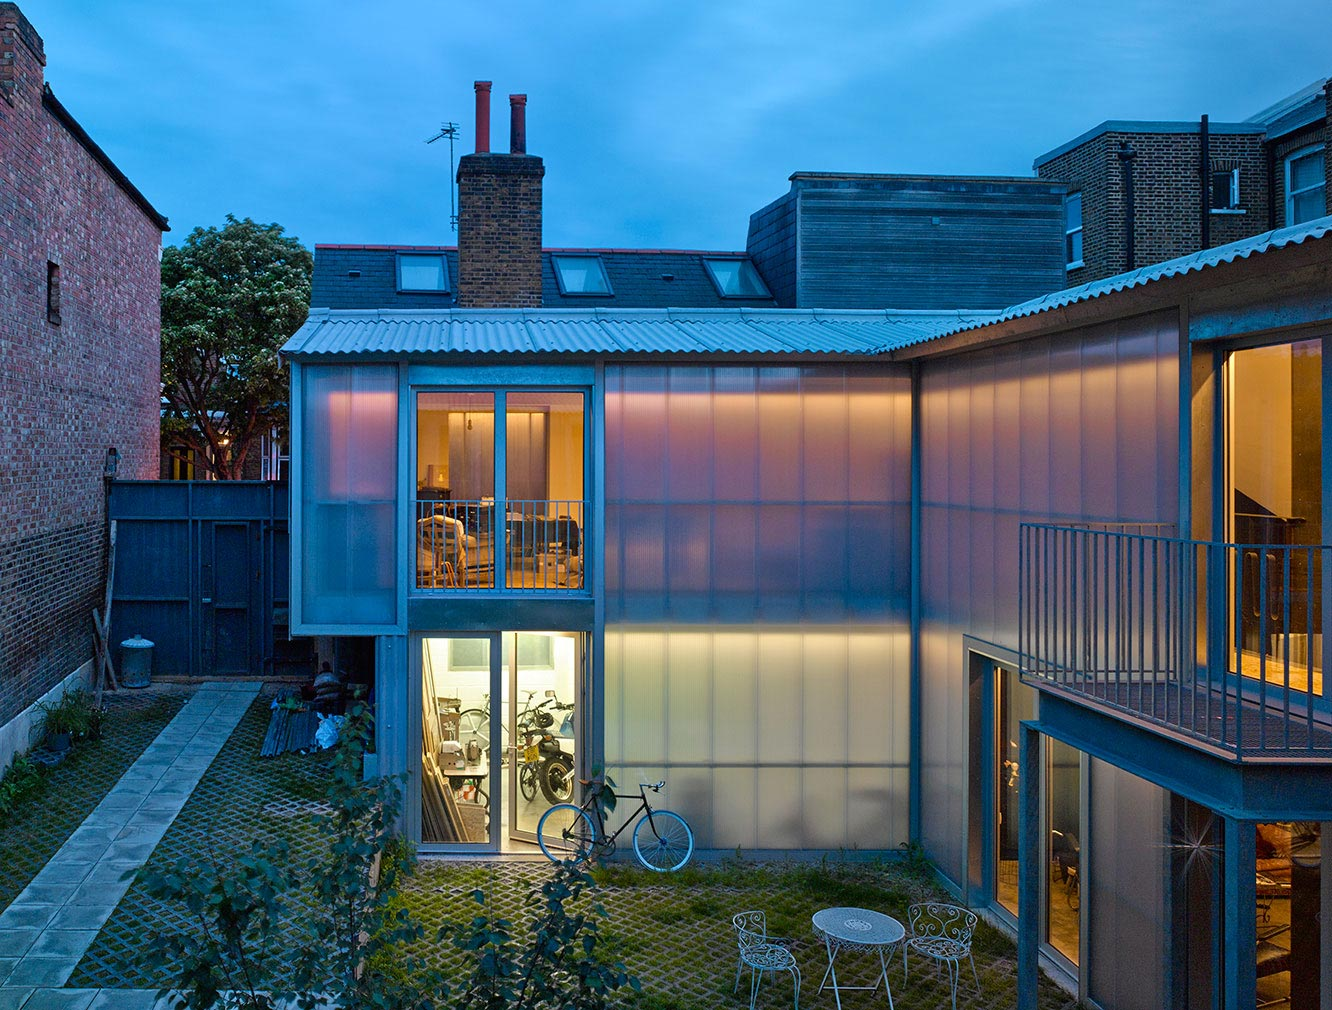 The Yard House by Jonathan Tuckey Design